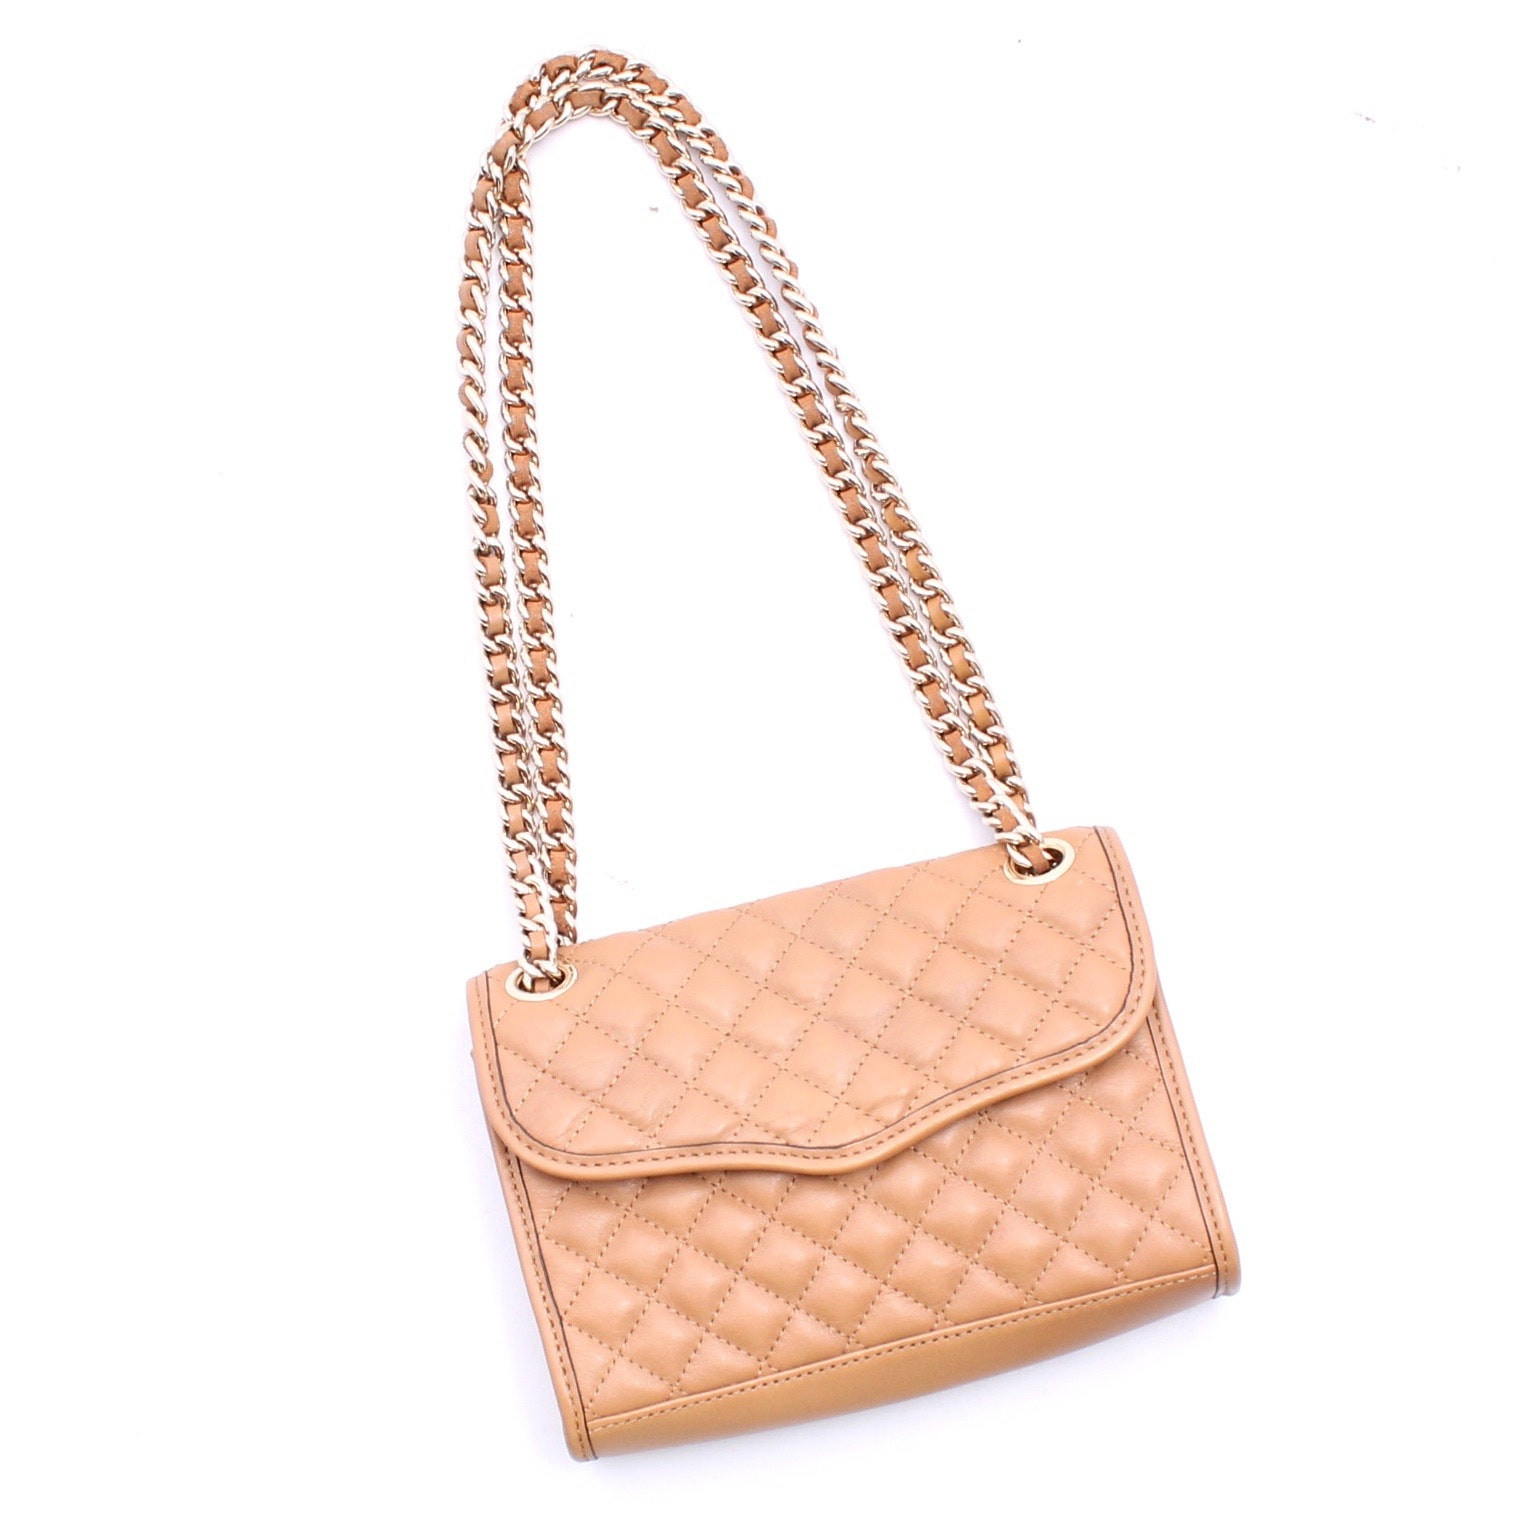 Rebecca Minkoff Tan Quilted Leather Chain Strap Shoulder Bag